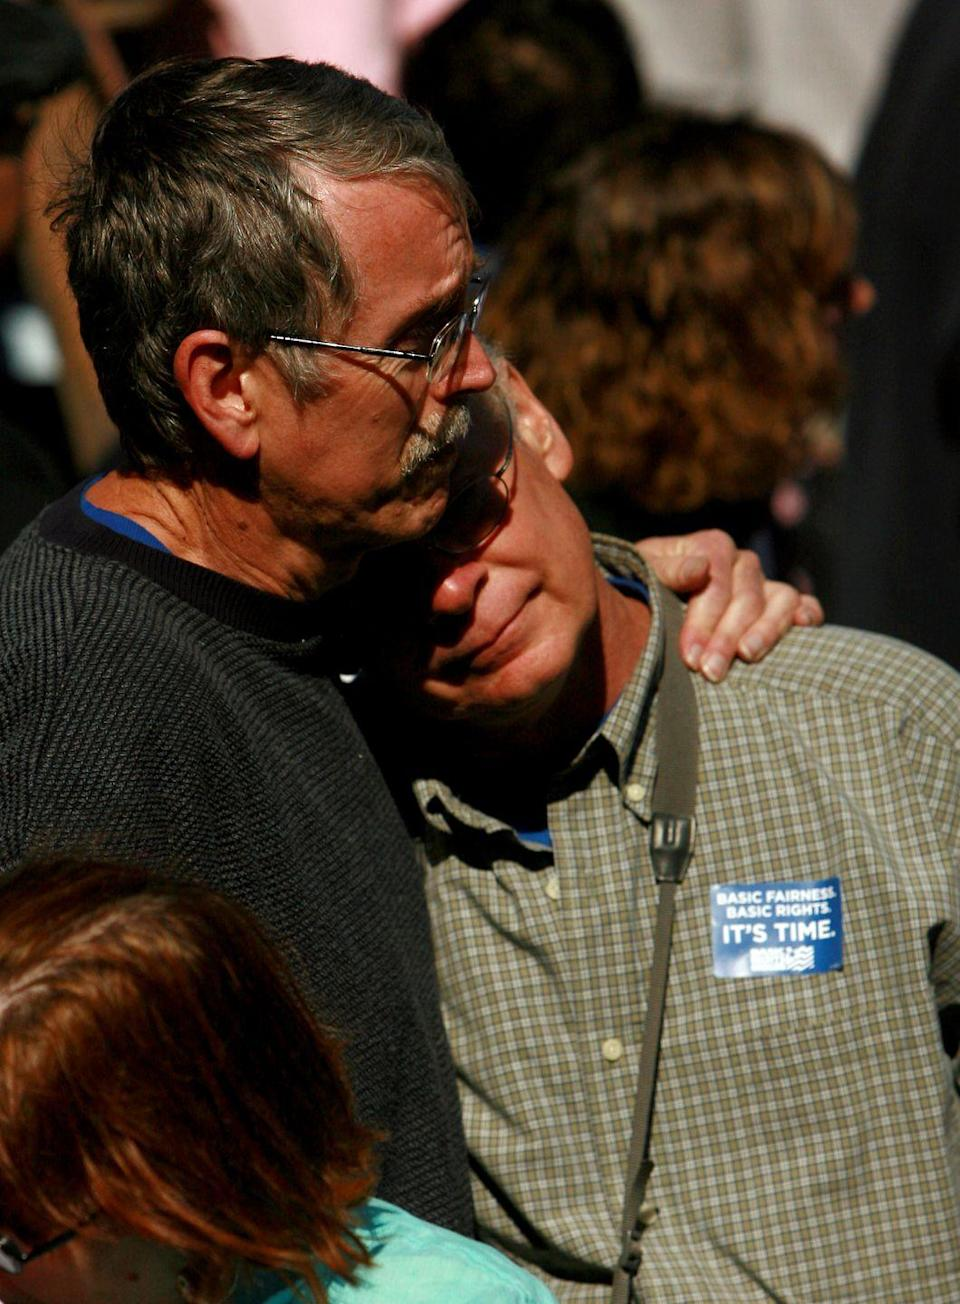 <p>Partnered for 30 years, Ron and Ken (pictured here) have an emotional moment after the Oregon Family Fairness Act and the Oregon Equality Act was passed in 2007. The bills allowed committed same-sex relationships as domestic partnerships and discrimination protections for LGBTQ+ members in employment, housing and other public sectors. <br></p>